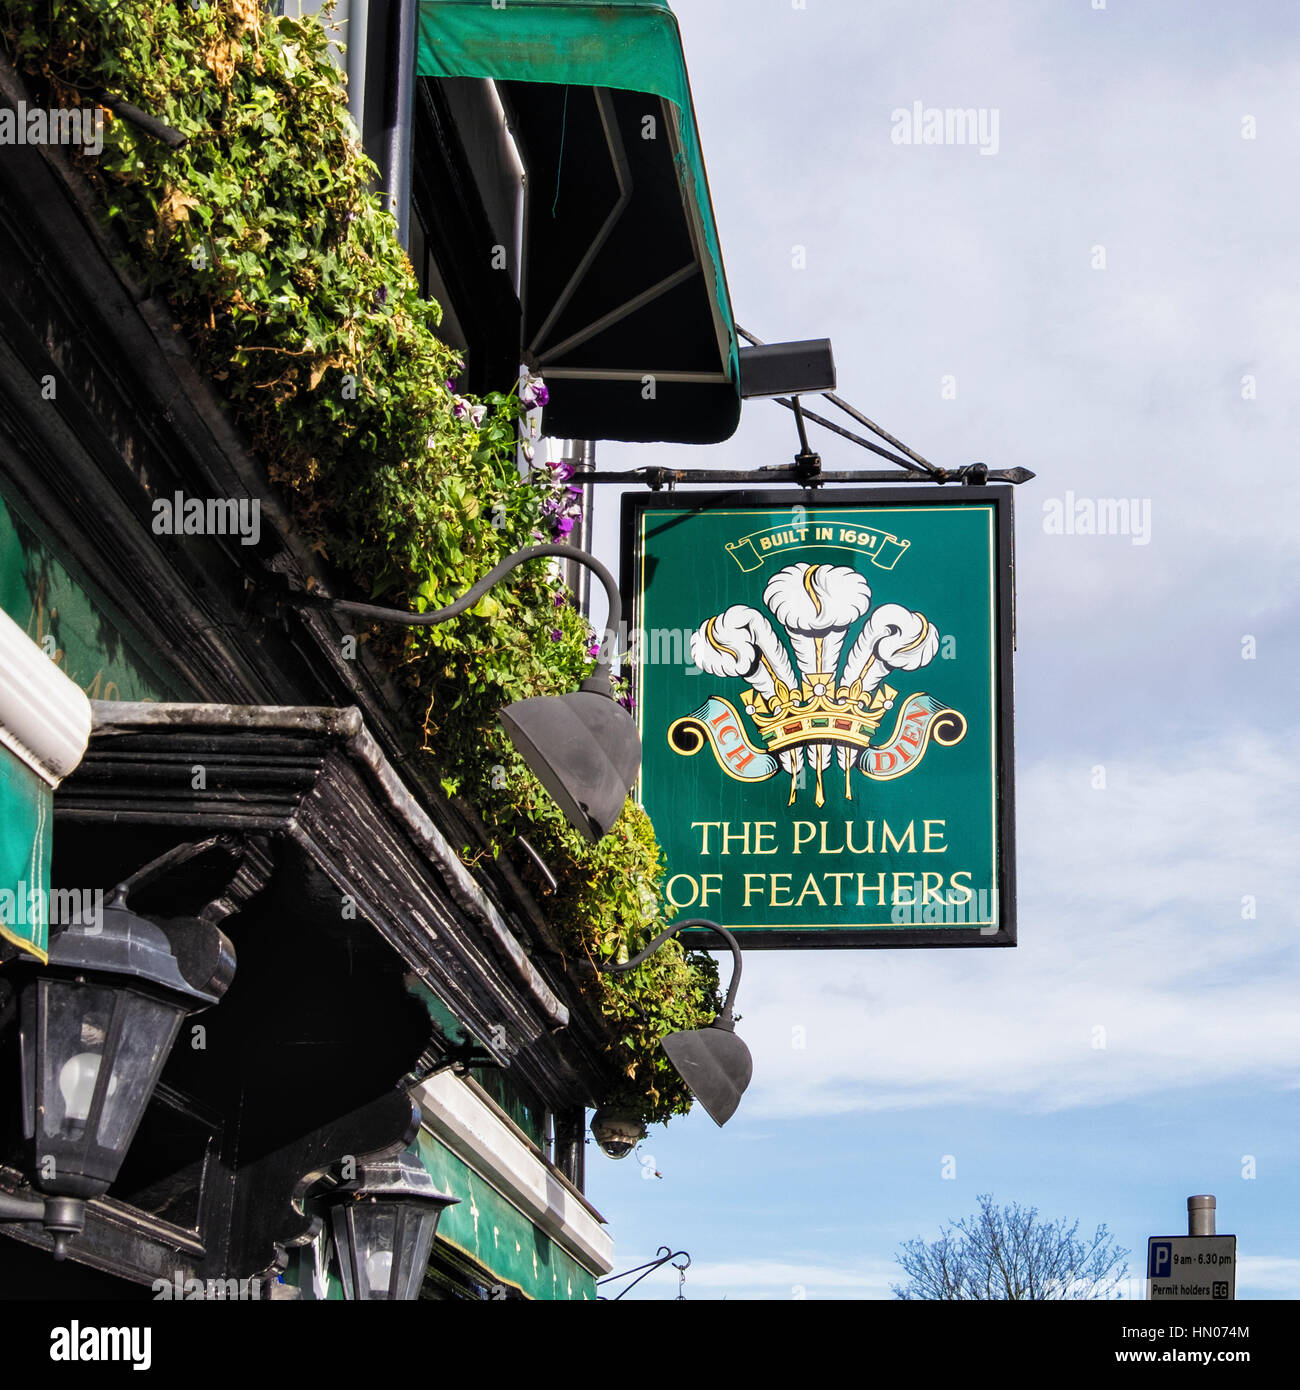 London, Greenwich - The Plume of Feathers - sign outside traditional English Pub - Stock Image